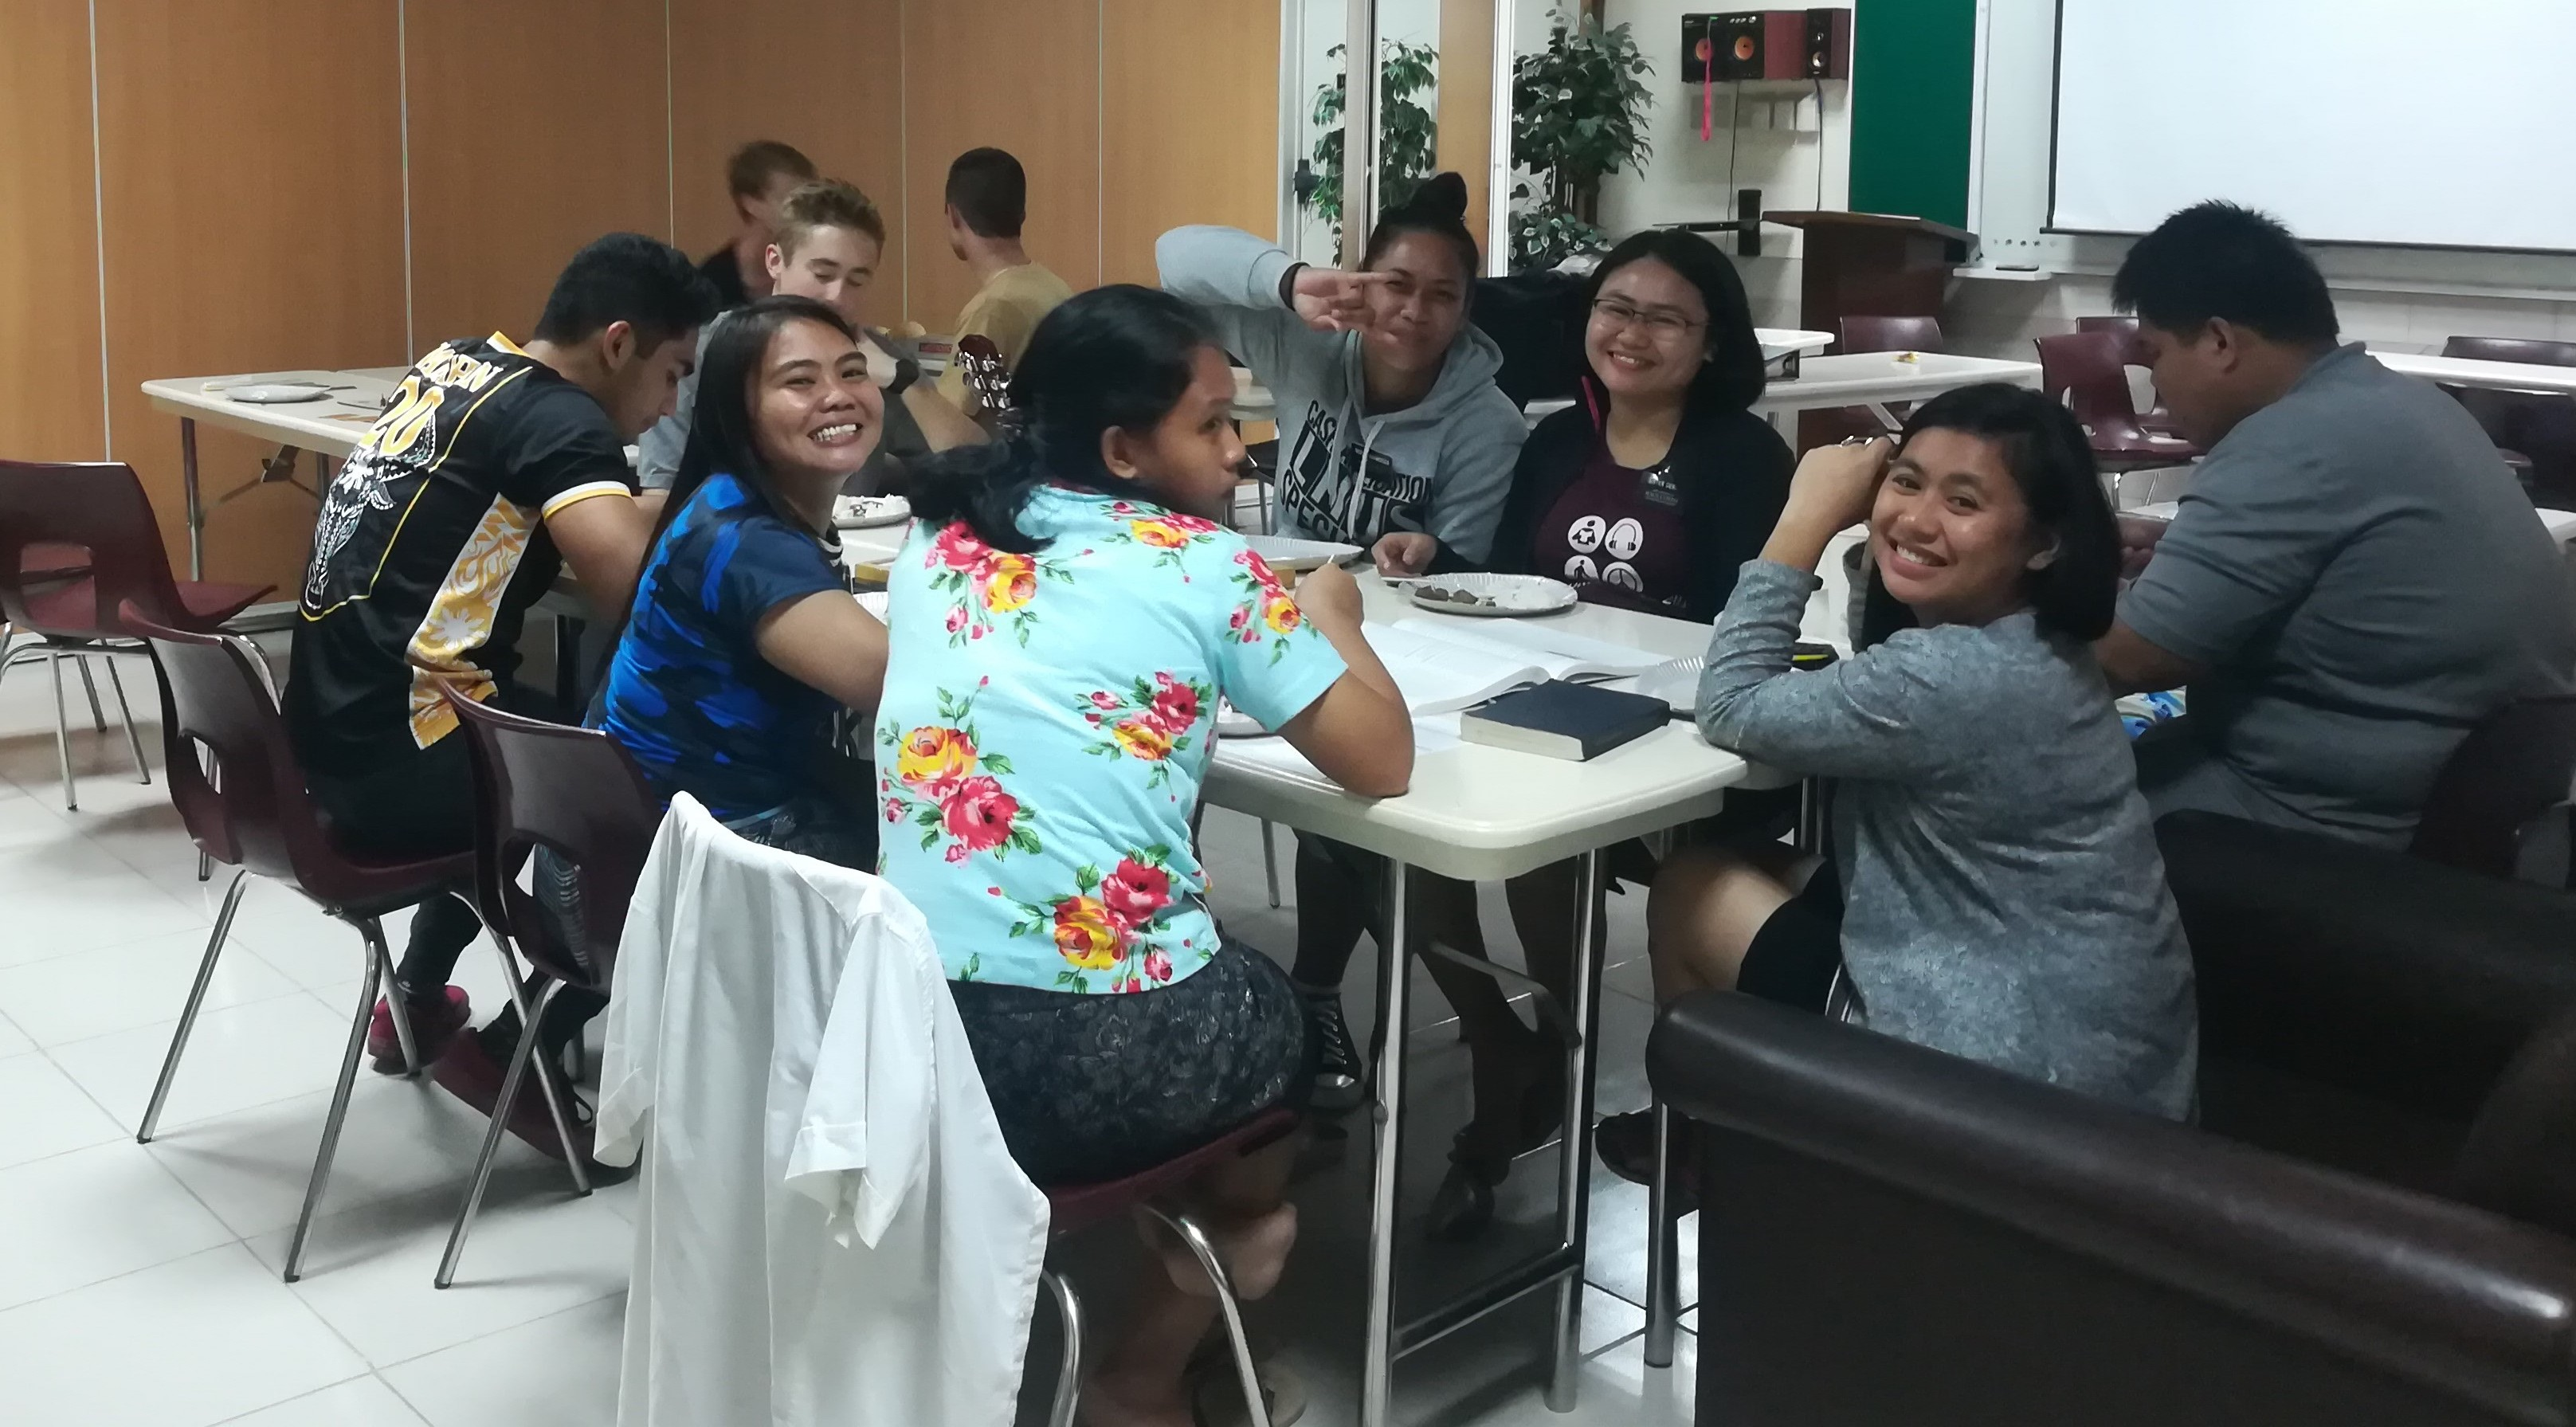 Missionaries in the Philippines enjoy time together while sheltered in a meetinghouse during Typhoon Mangkhut.